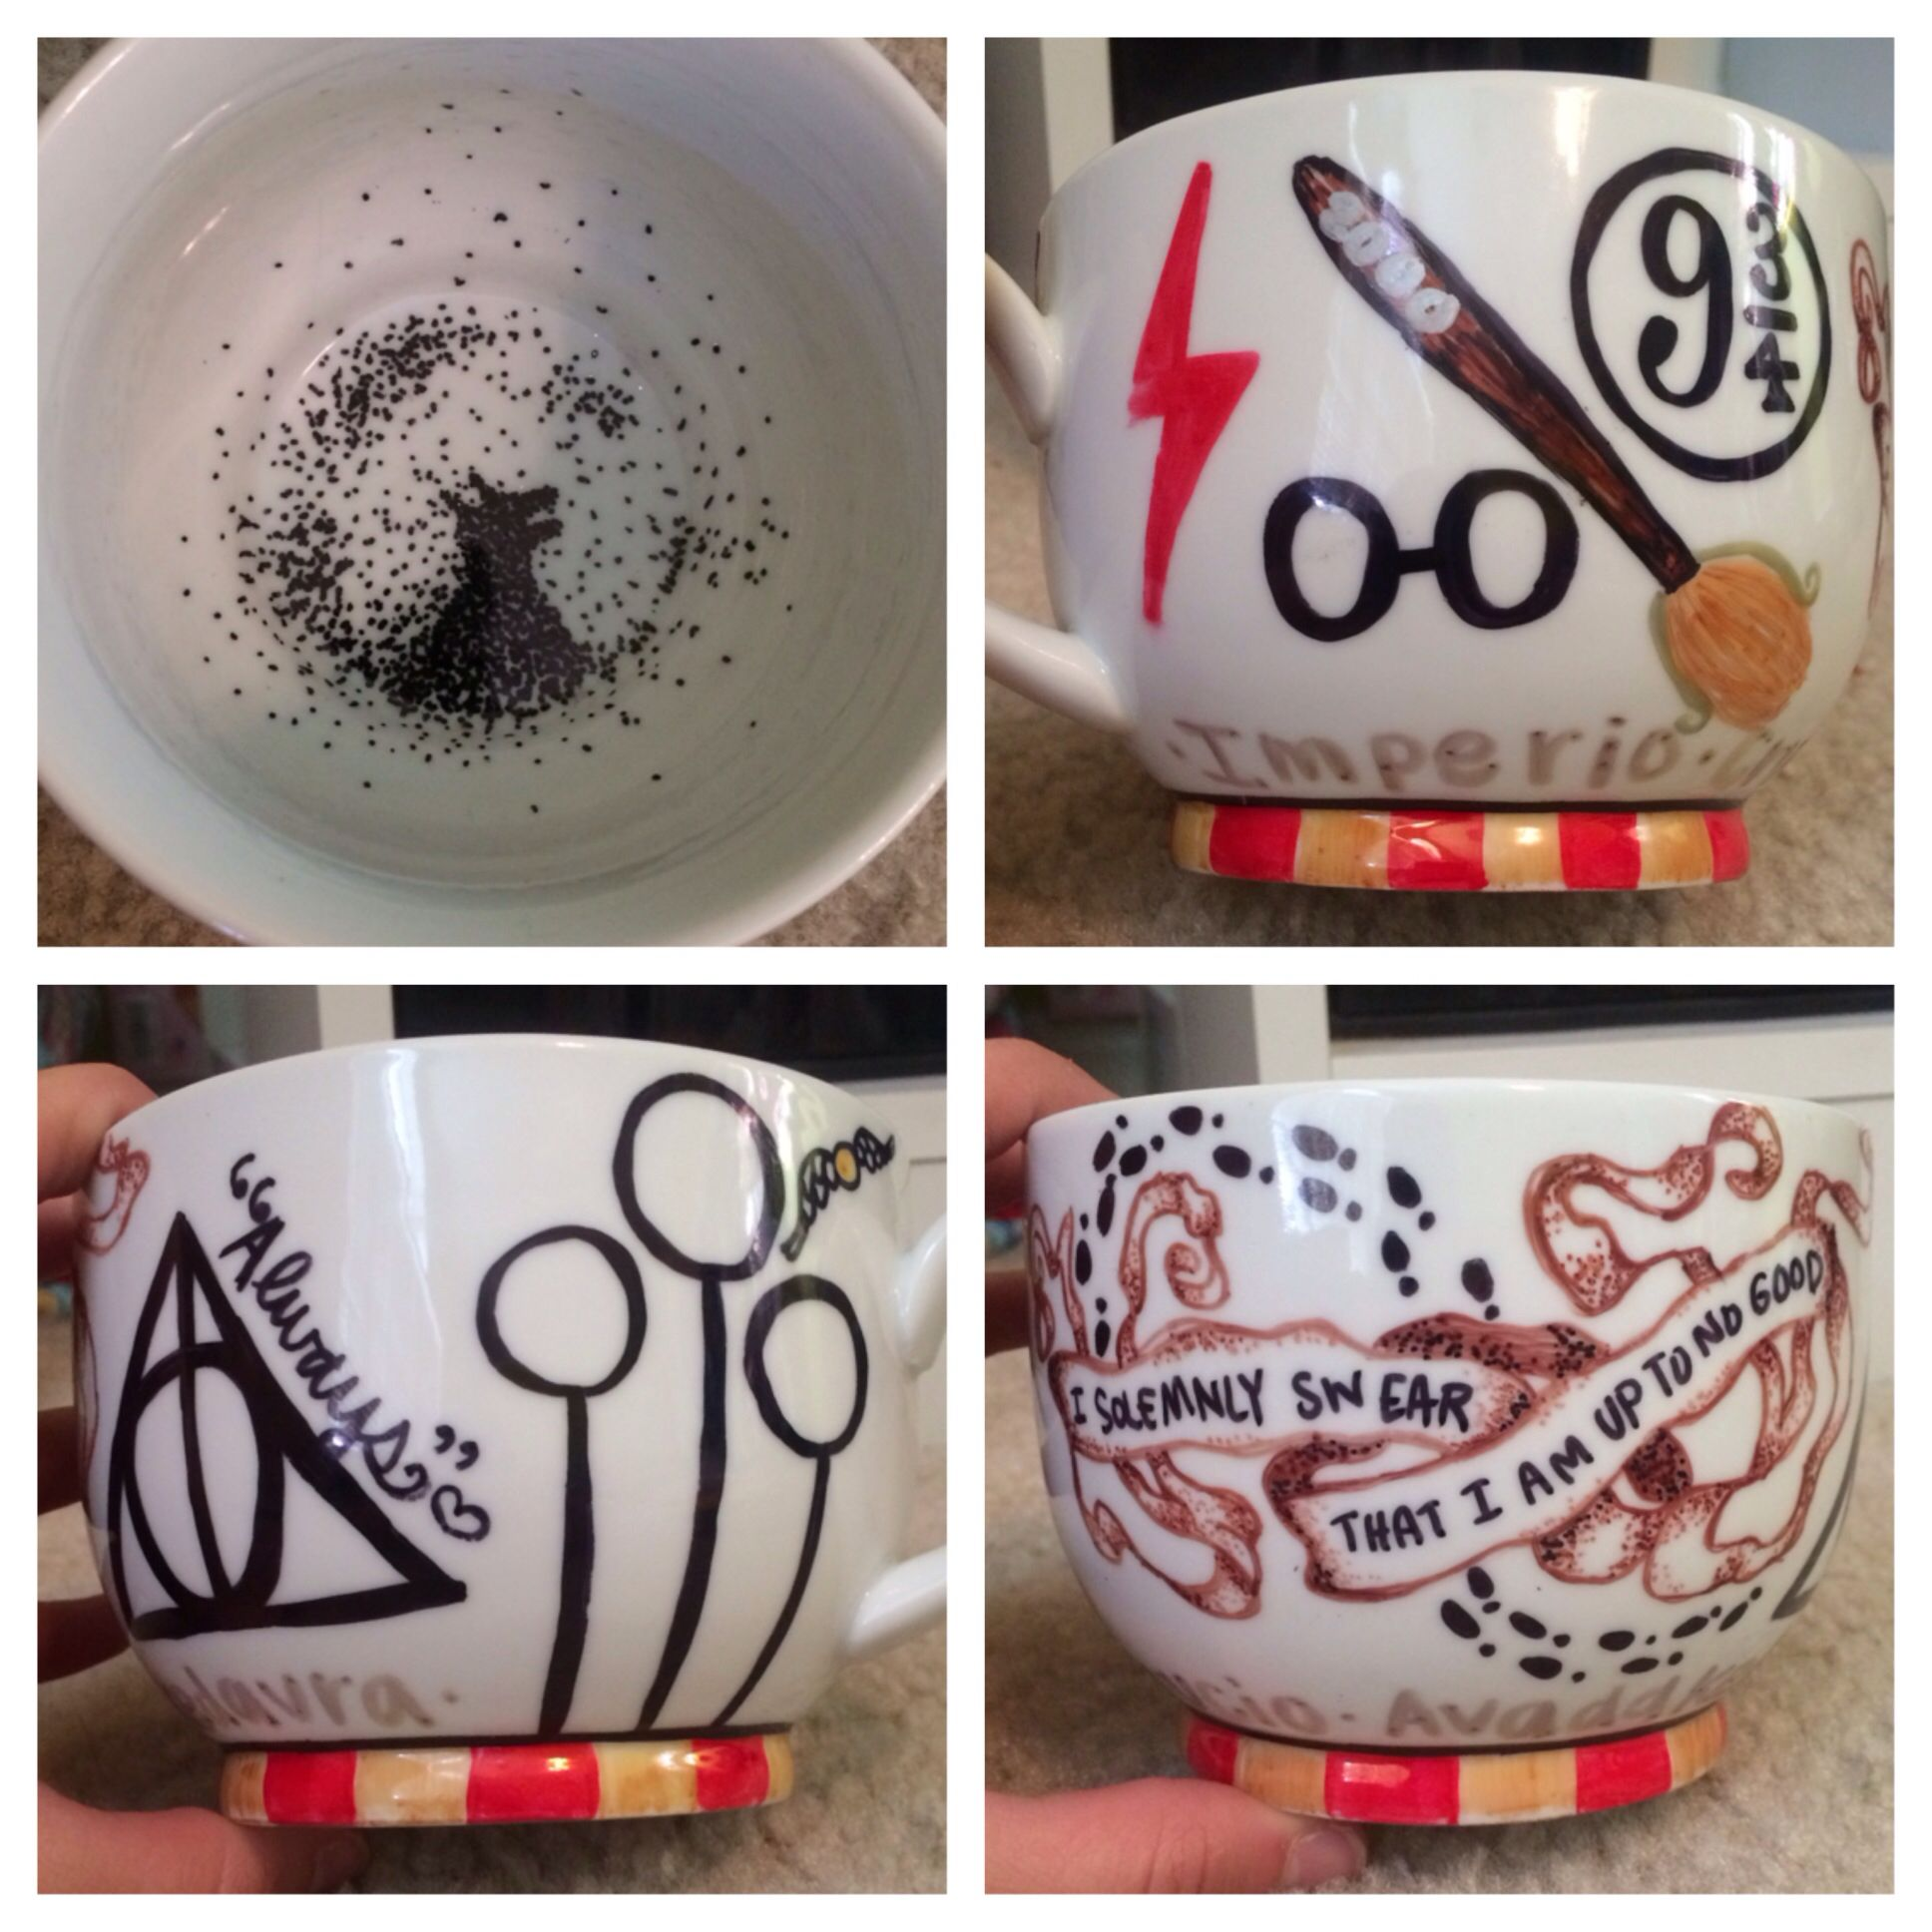 b40aa6cab63dfc Harry potter sharpie mug done for a graduation gift i wonder how many  people would buy